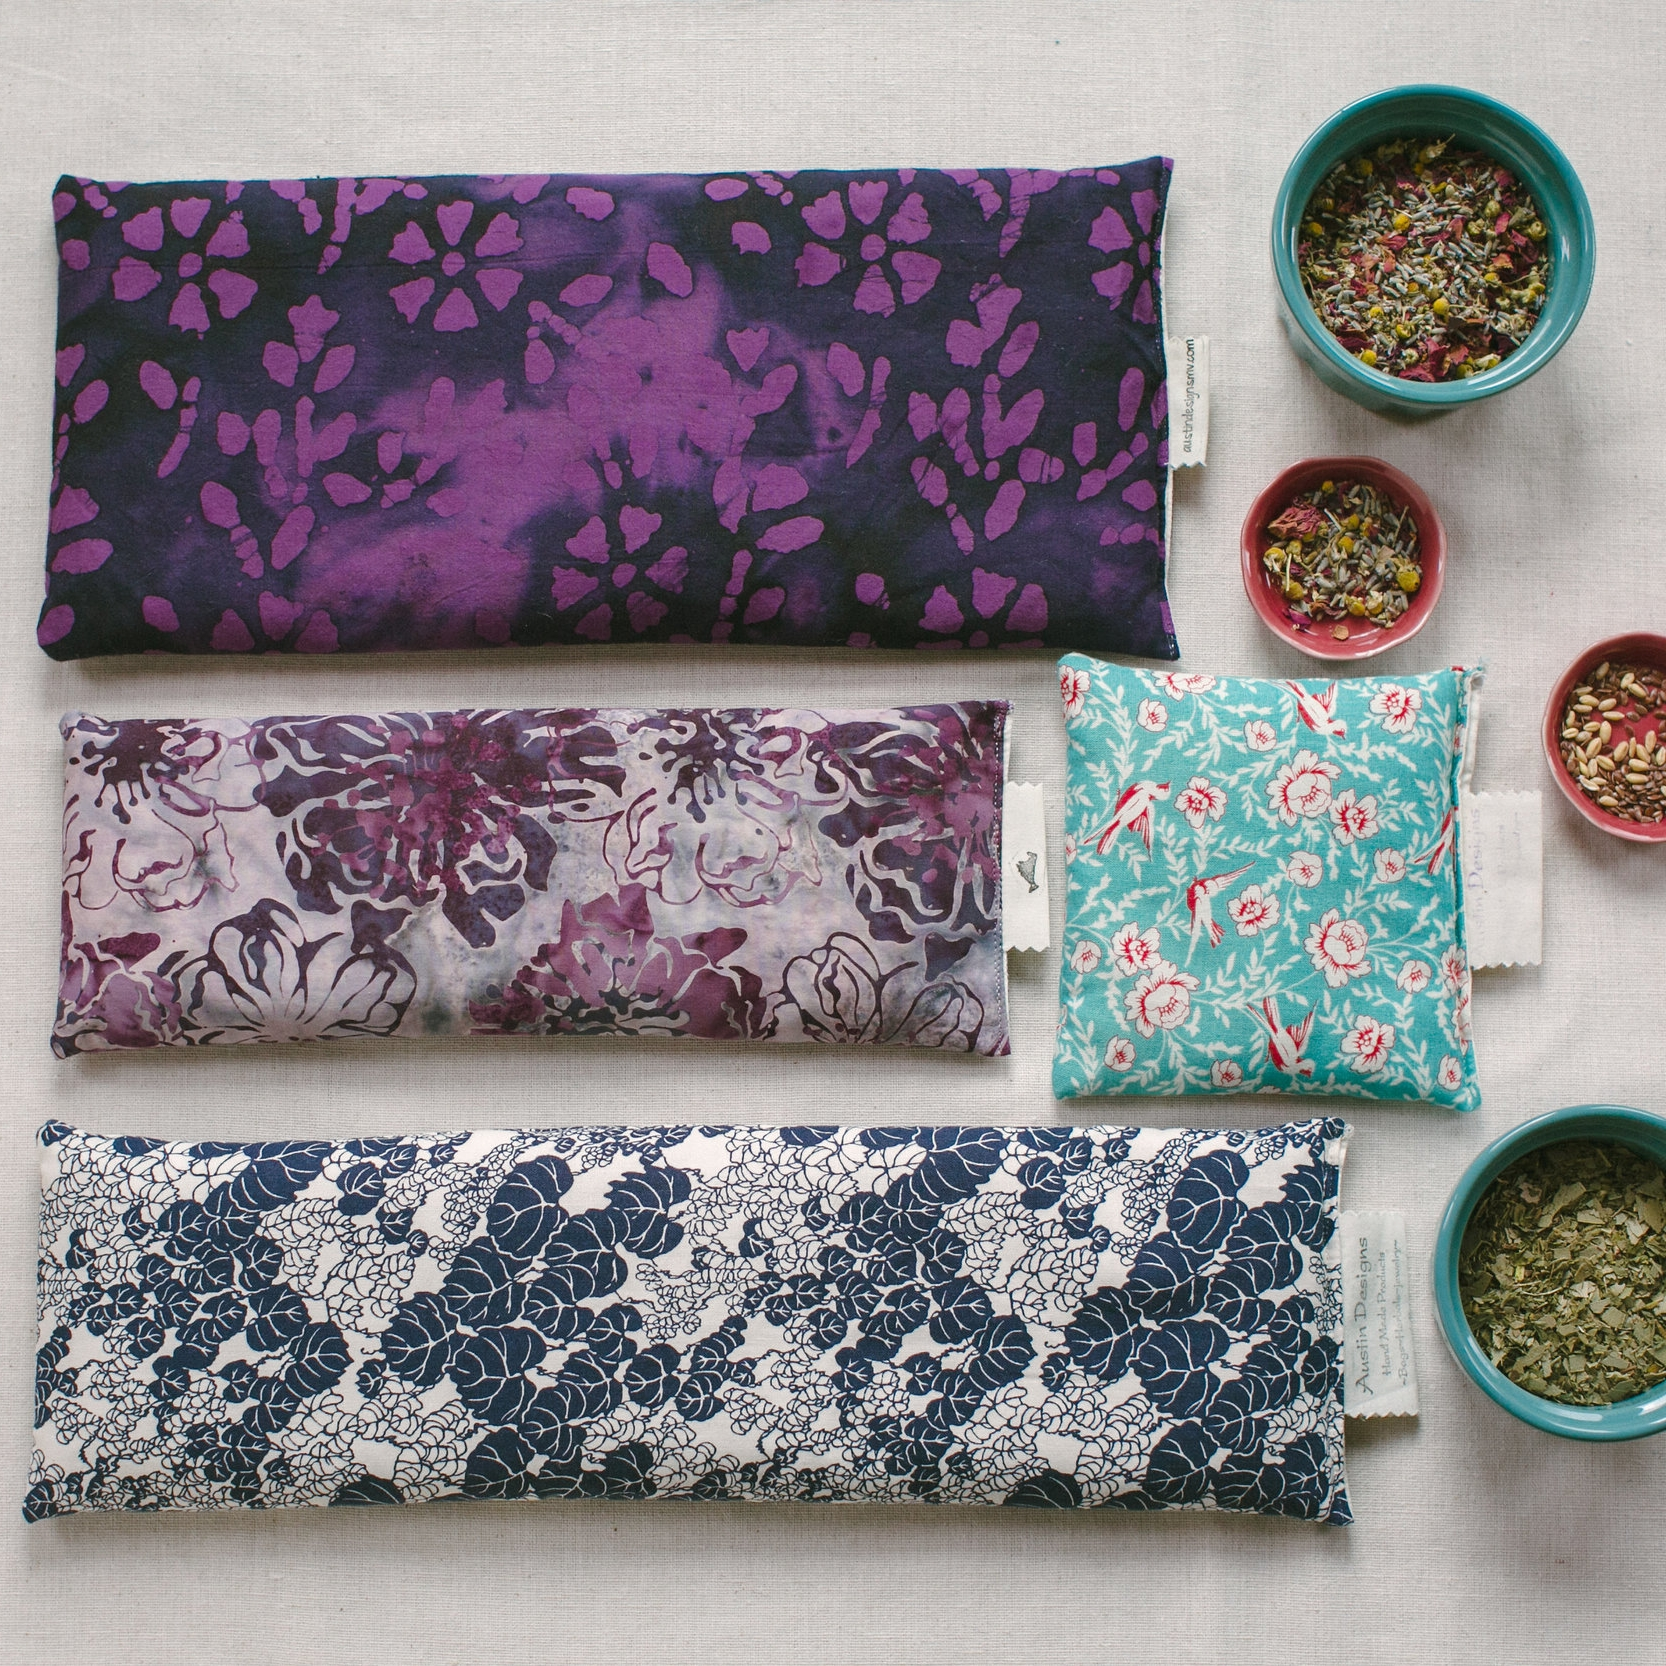 HEAT PACKS & EYE PILLOWS -